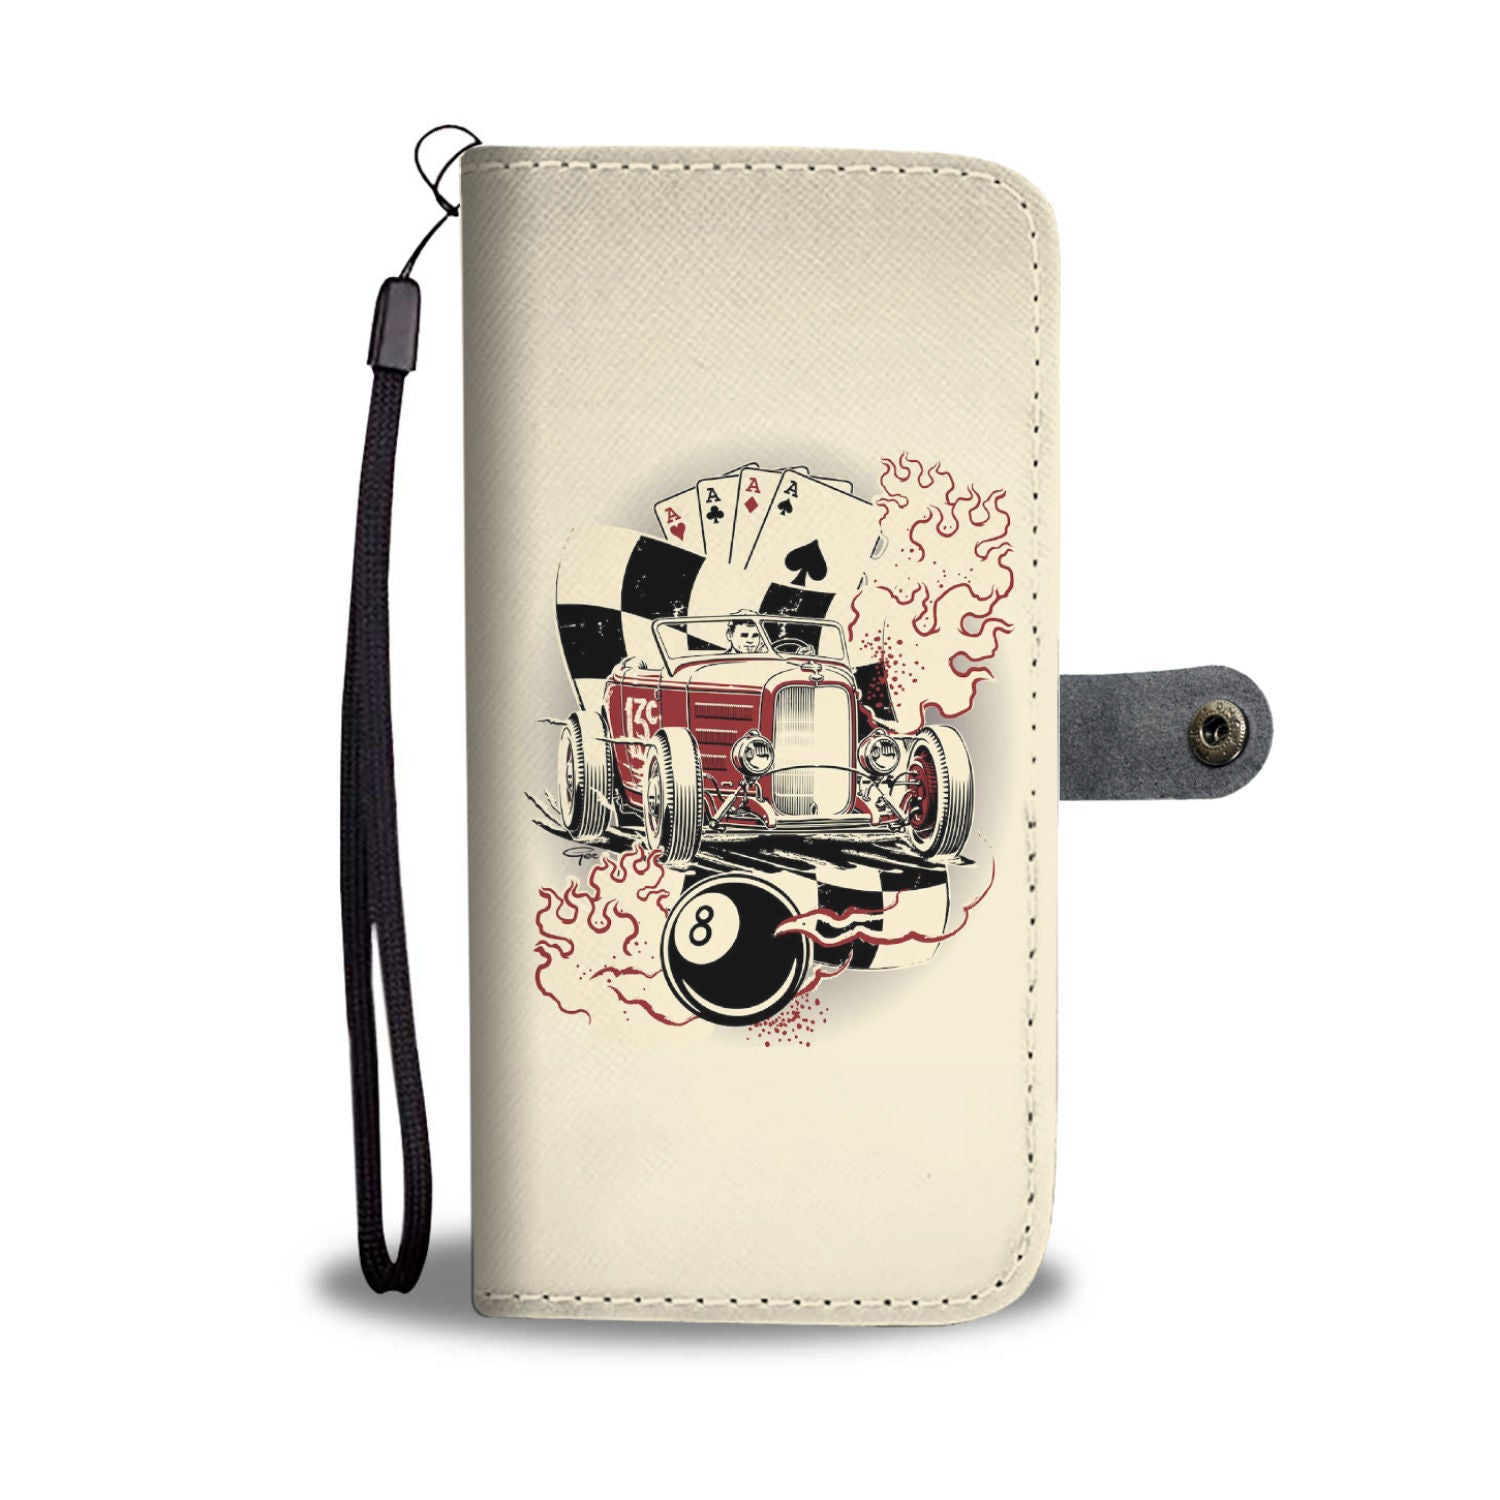 Hot Rod and Poker - Wallet case - fastandtune